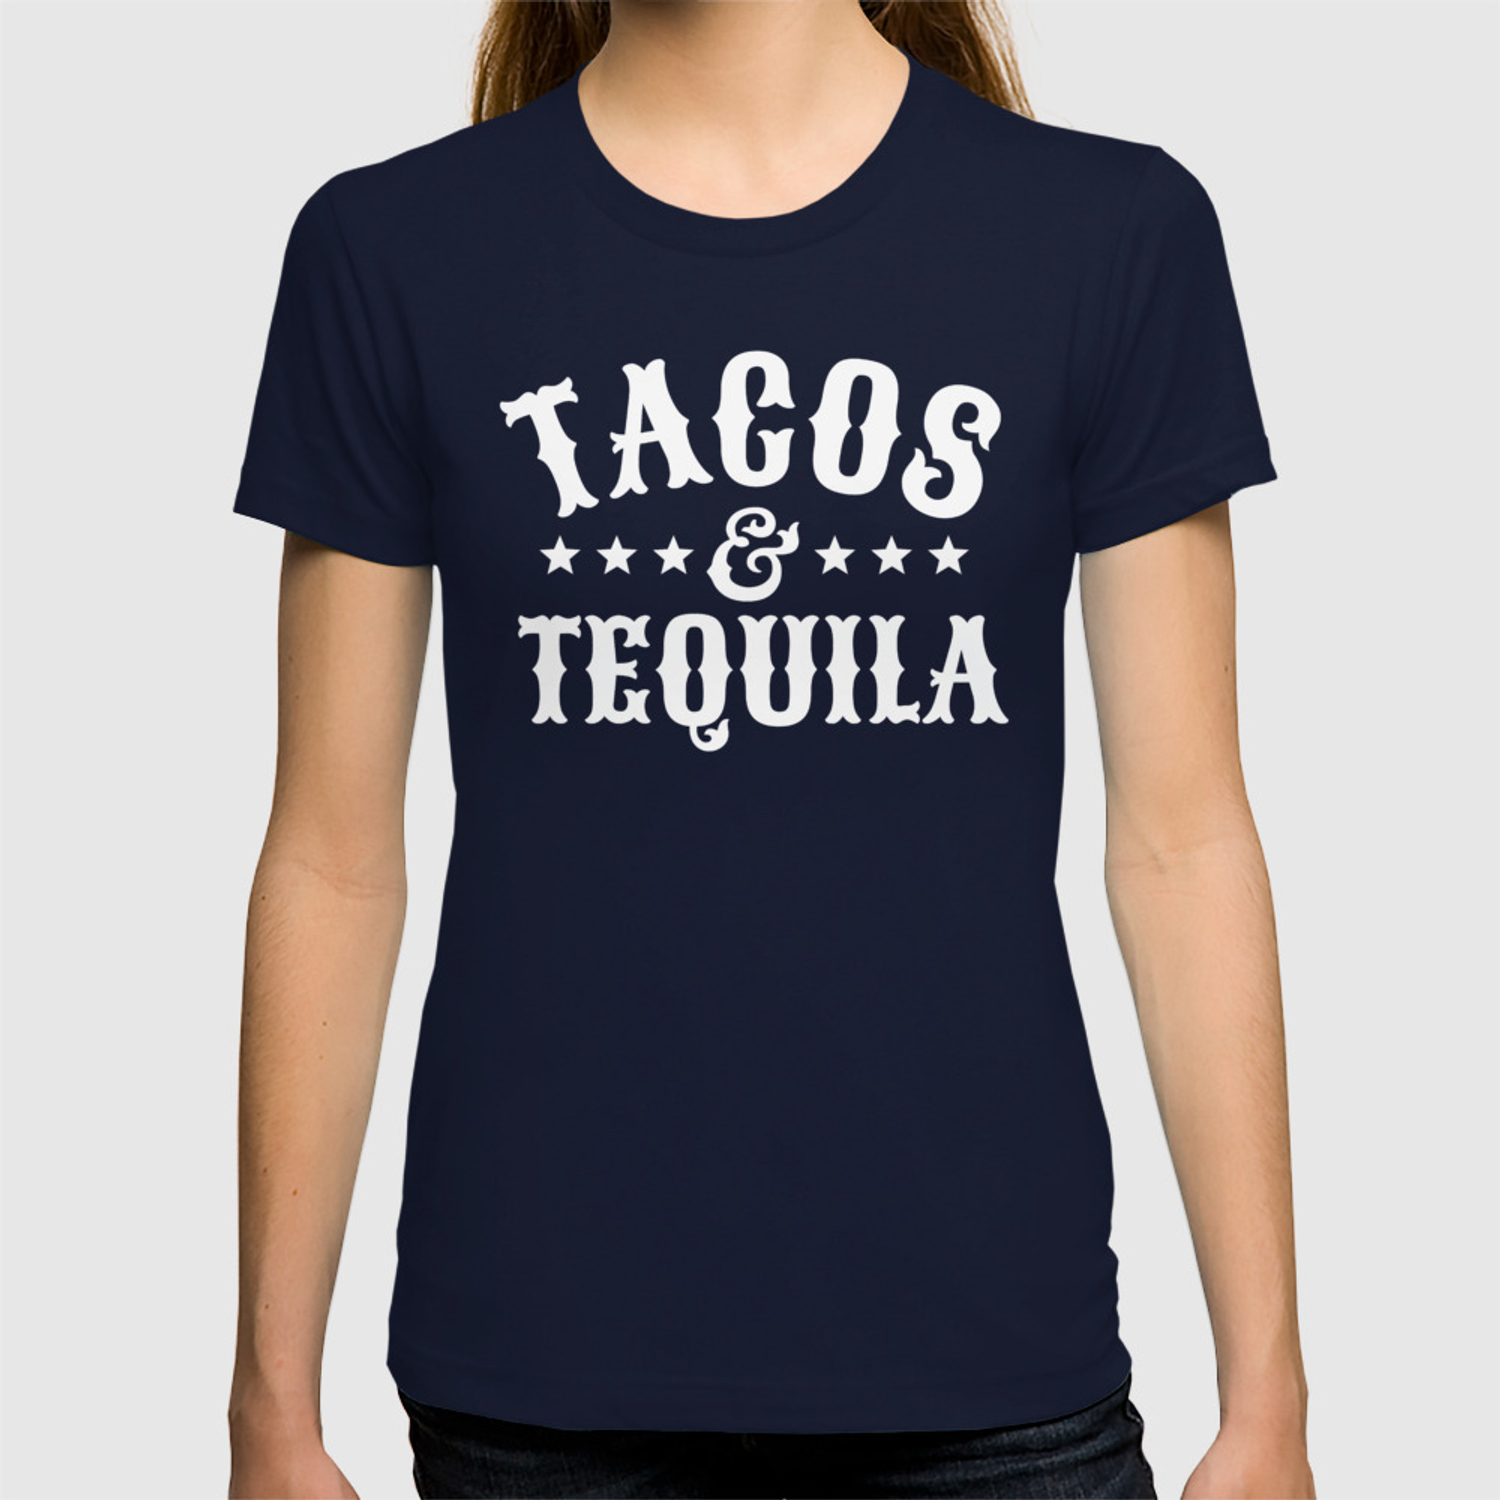 c28c0a6f3 Tacos & Tequila (Orange) T-shirt by creativeangel | Society6